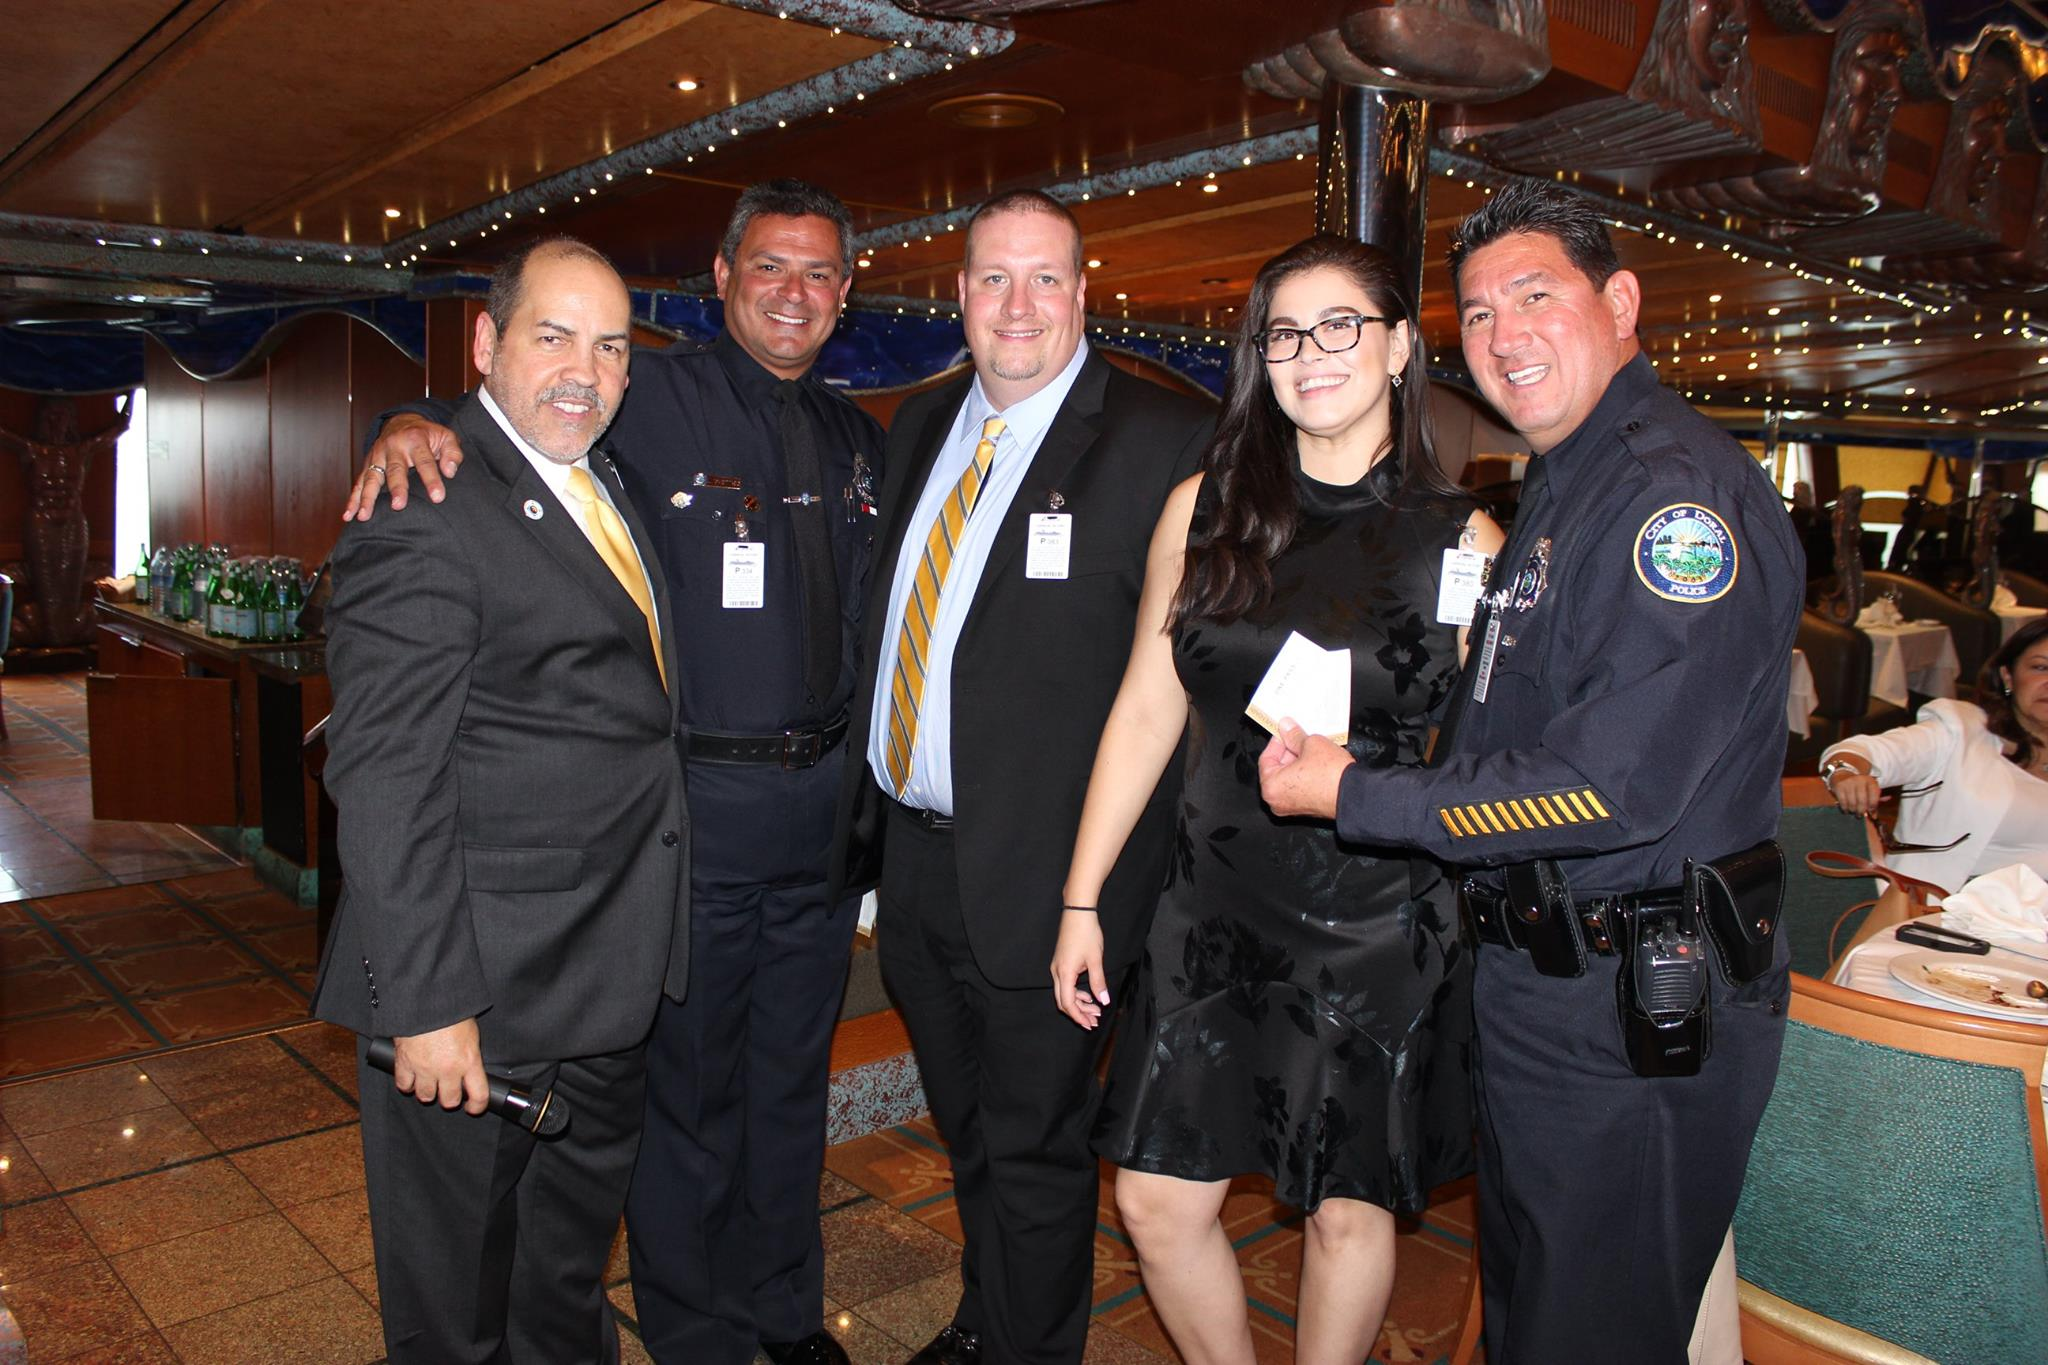 Carnival Cruise, a Doral Chamber of Commerce event.